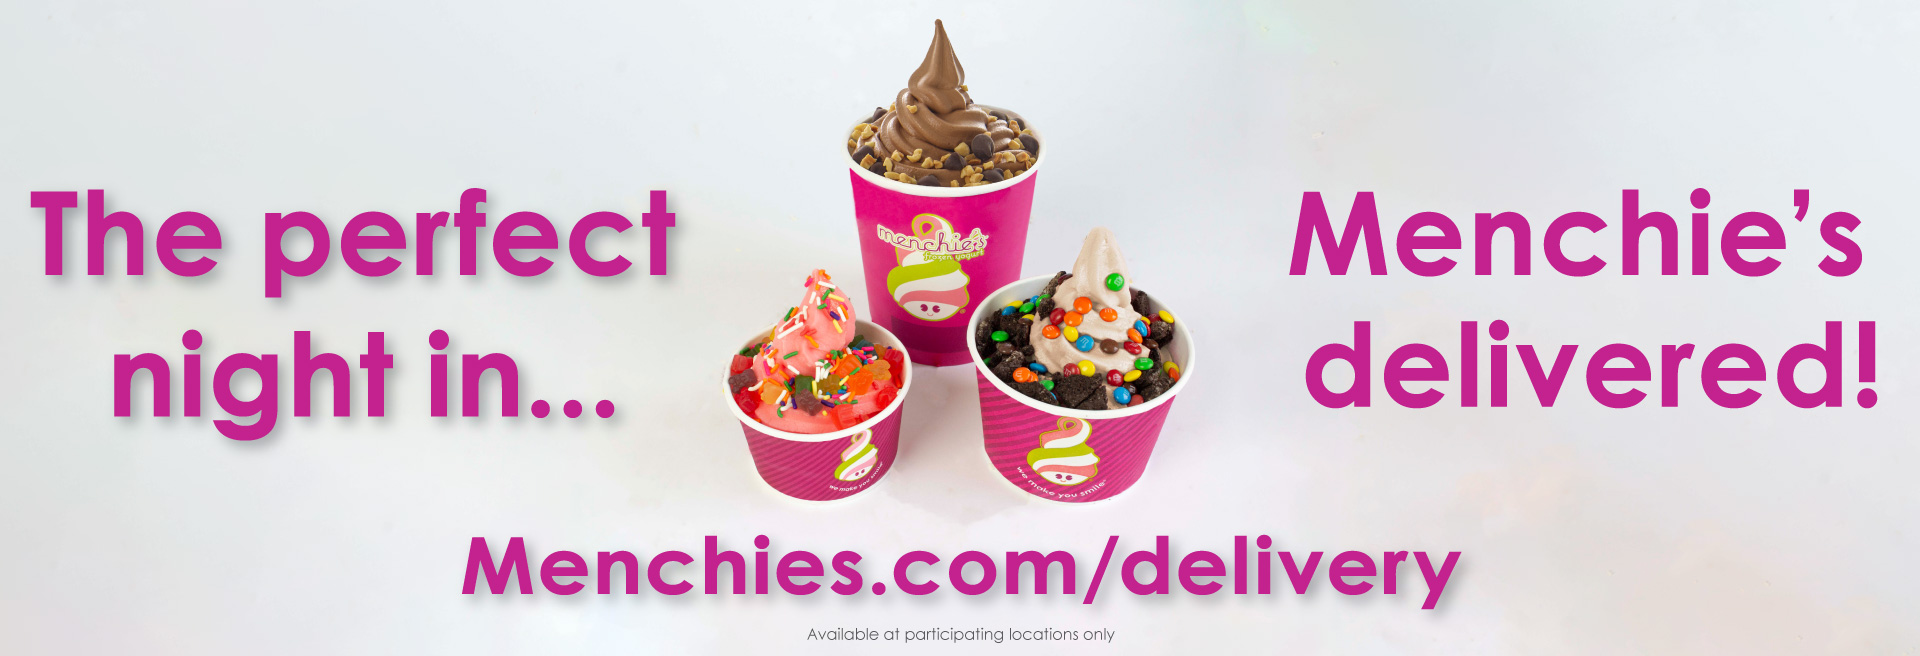 Having a night in? Get Menchie's delivered! Game night, movie night or just a night in with the family? Menchie's has you covered!